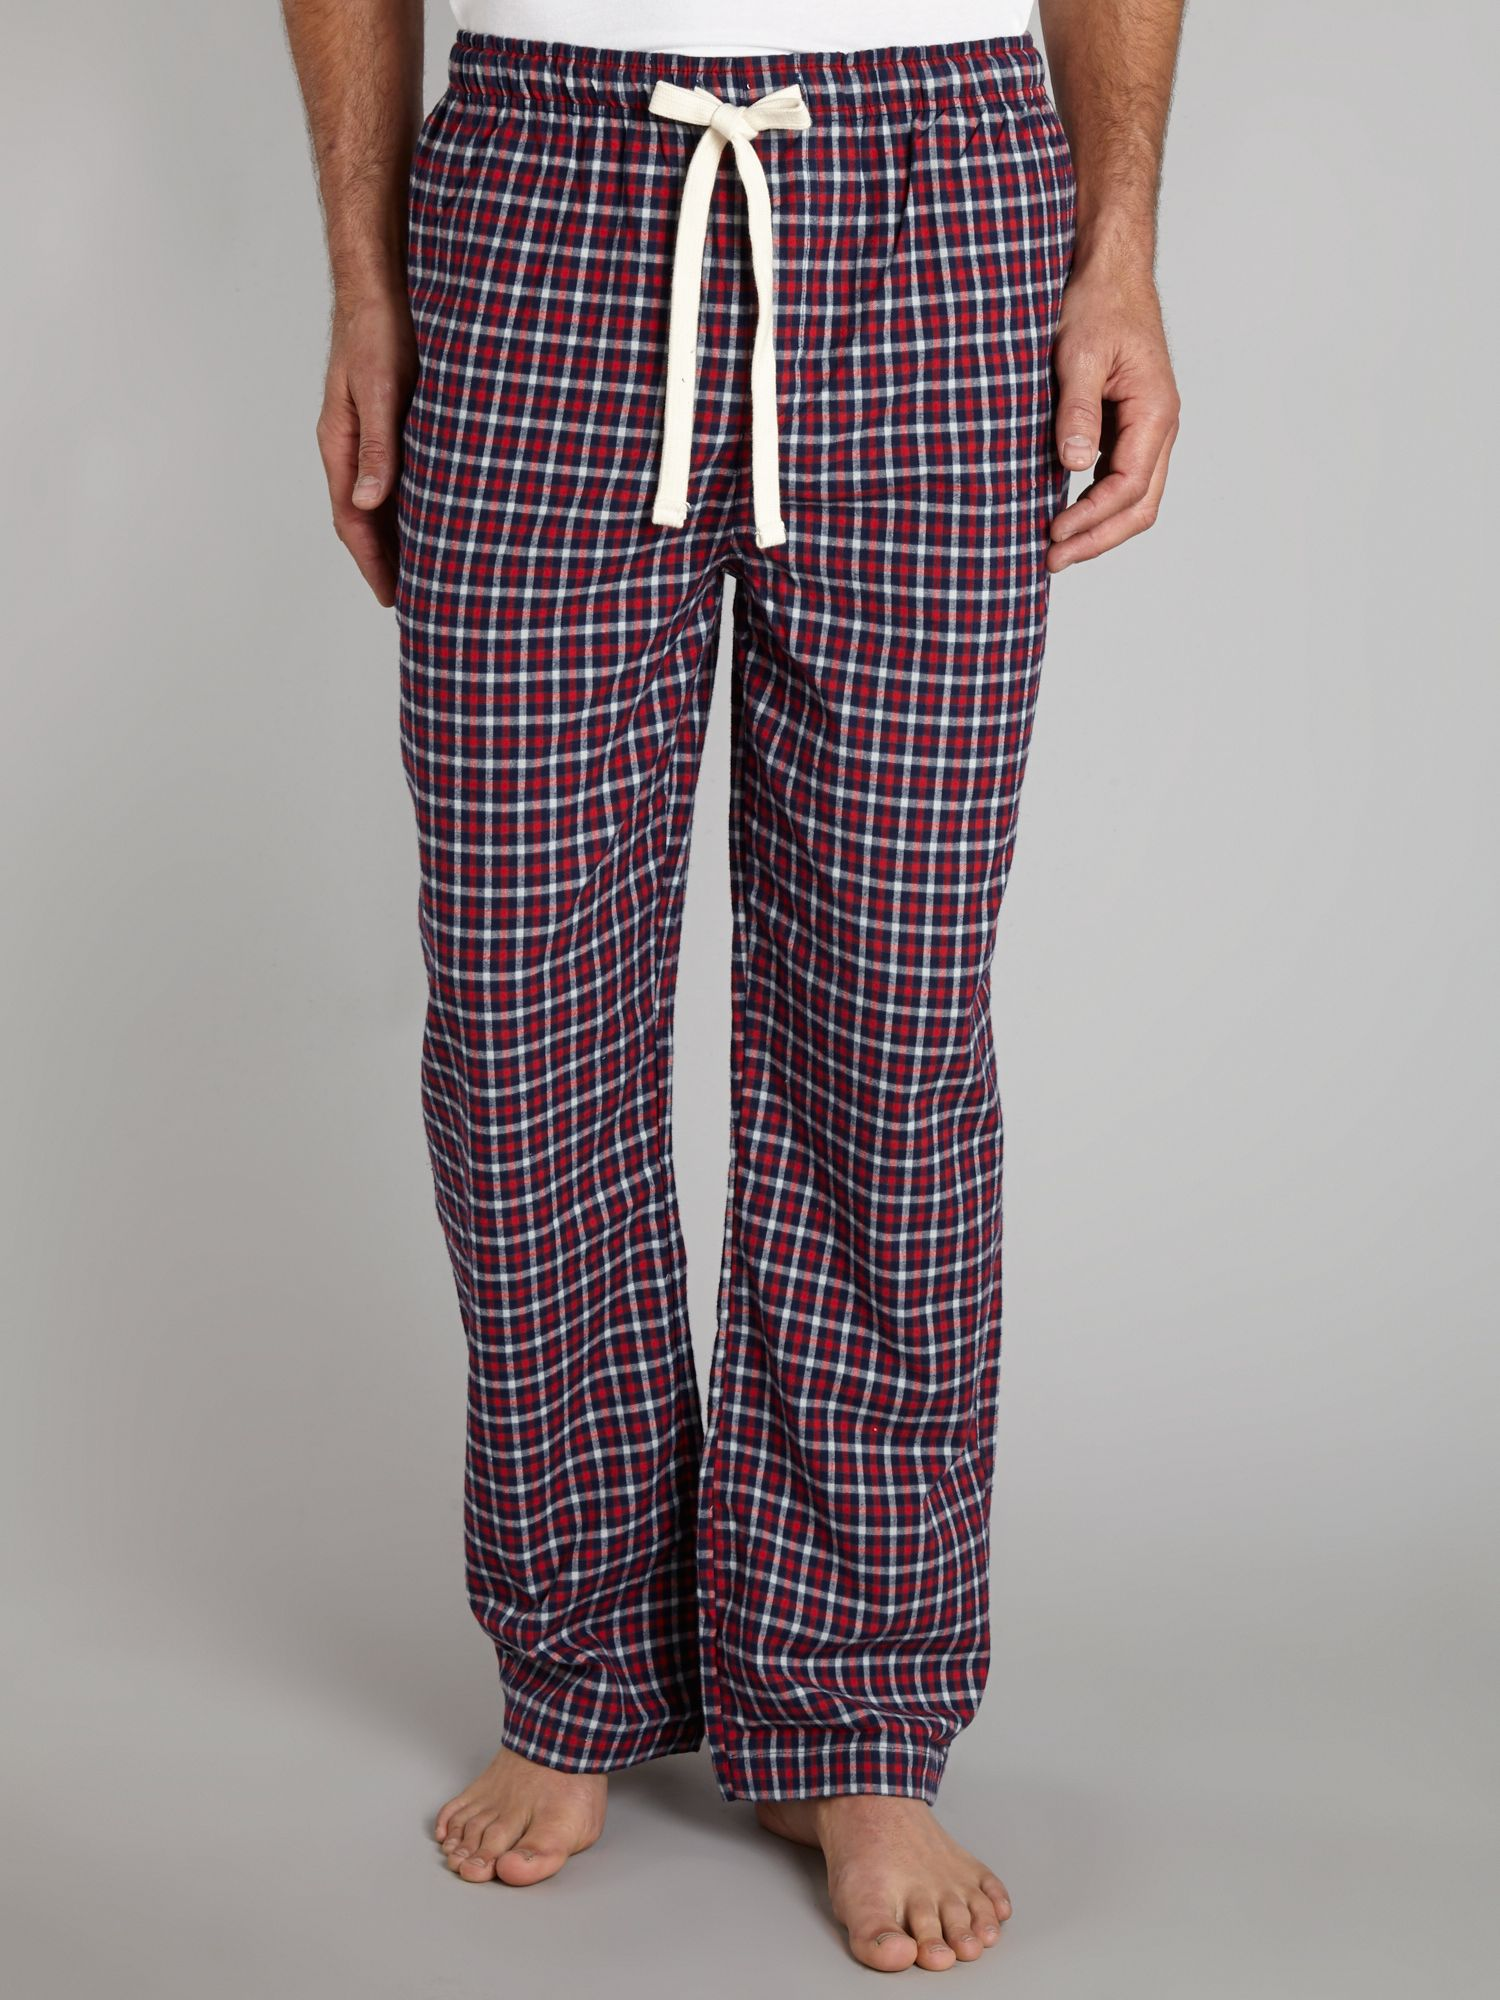 Mini red check flannel pj pant